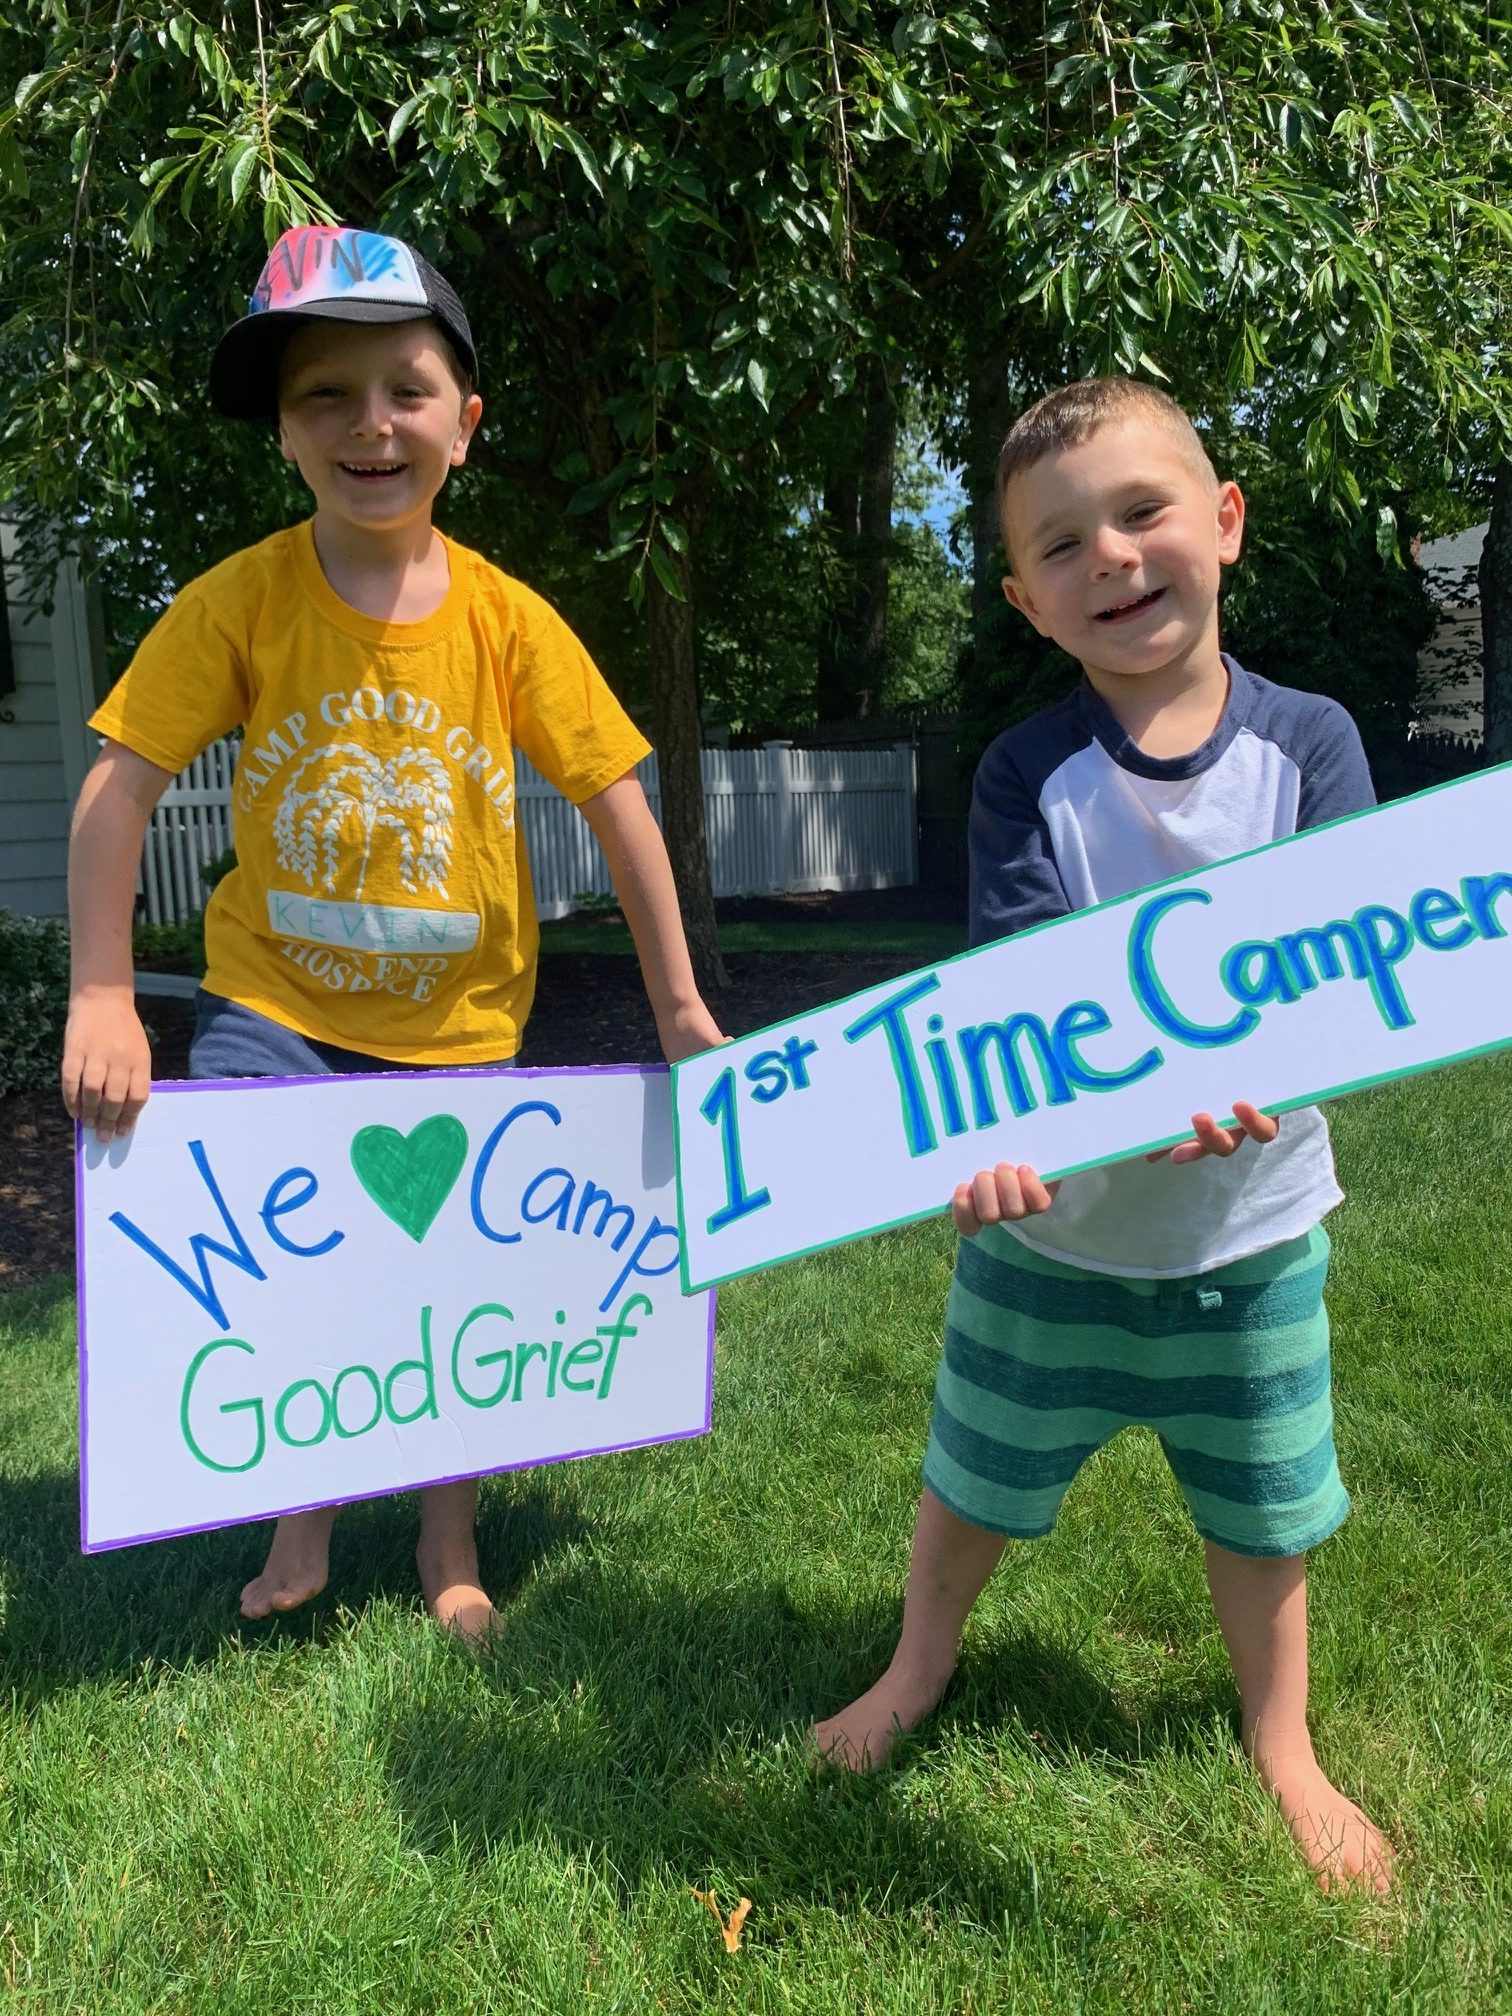 Camp Good Grief will welcome 88 campers on Monday including Kevin and Cormac Kretz of East Moriches. The camp, which is East End Hospice's bereavement camp for grieving children and teenagers, will operate at a reduced capacity this season and with modifications but continues to serve children across the East End. To donate, visit eeh.org.